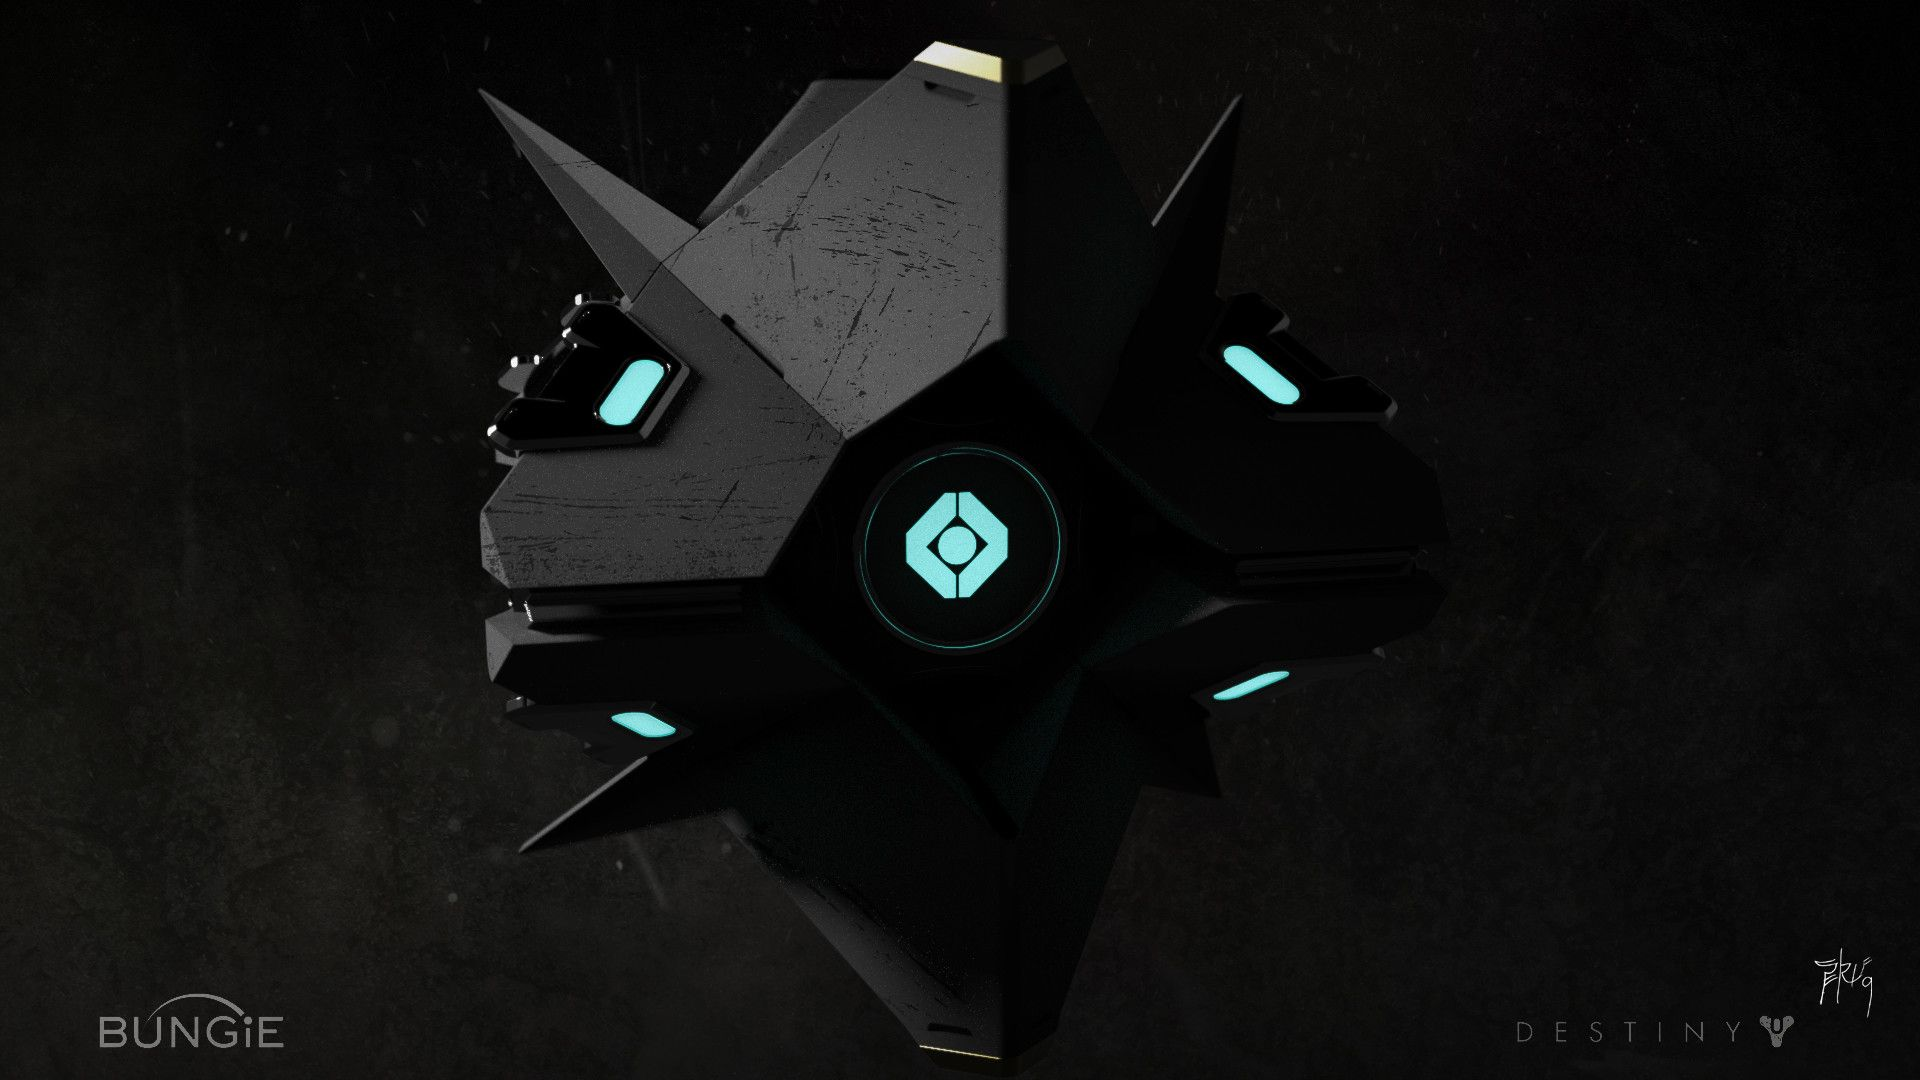 40 Best Free Destiny Ghost Wallpapers Wallpaperaccess